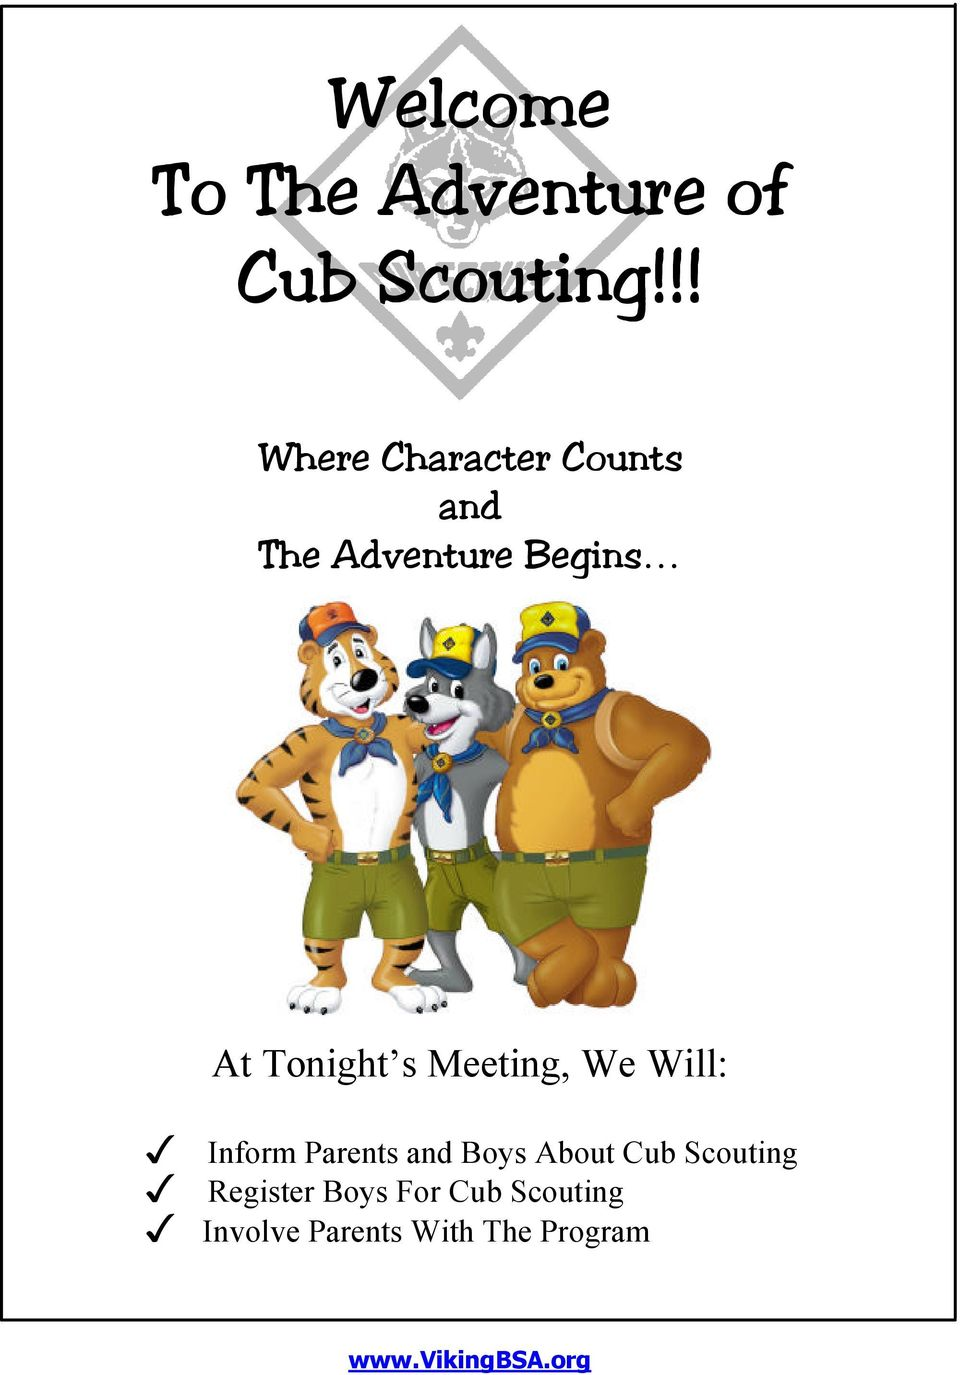 s Meeting, We Will: Inform Parents and Boys About Cub